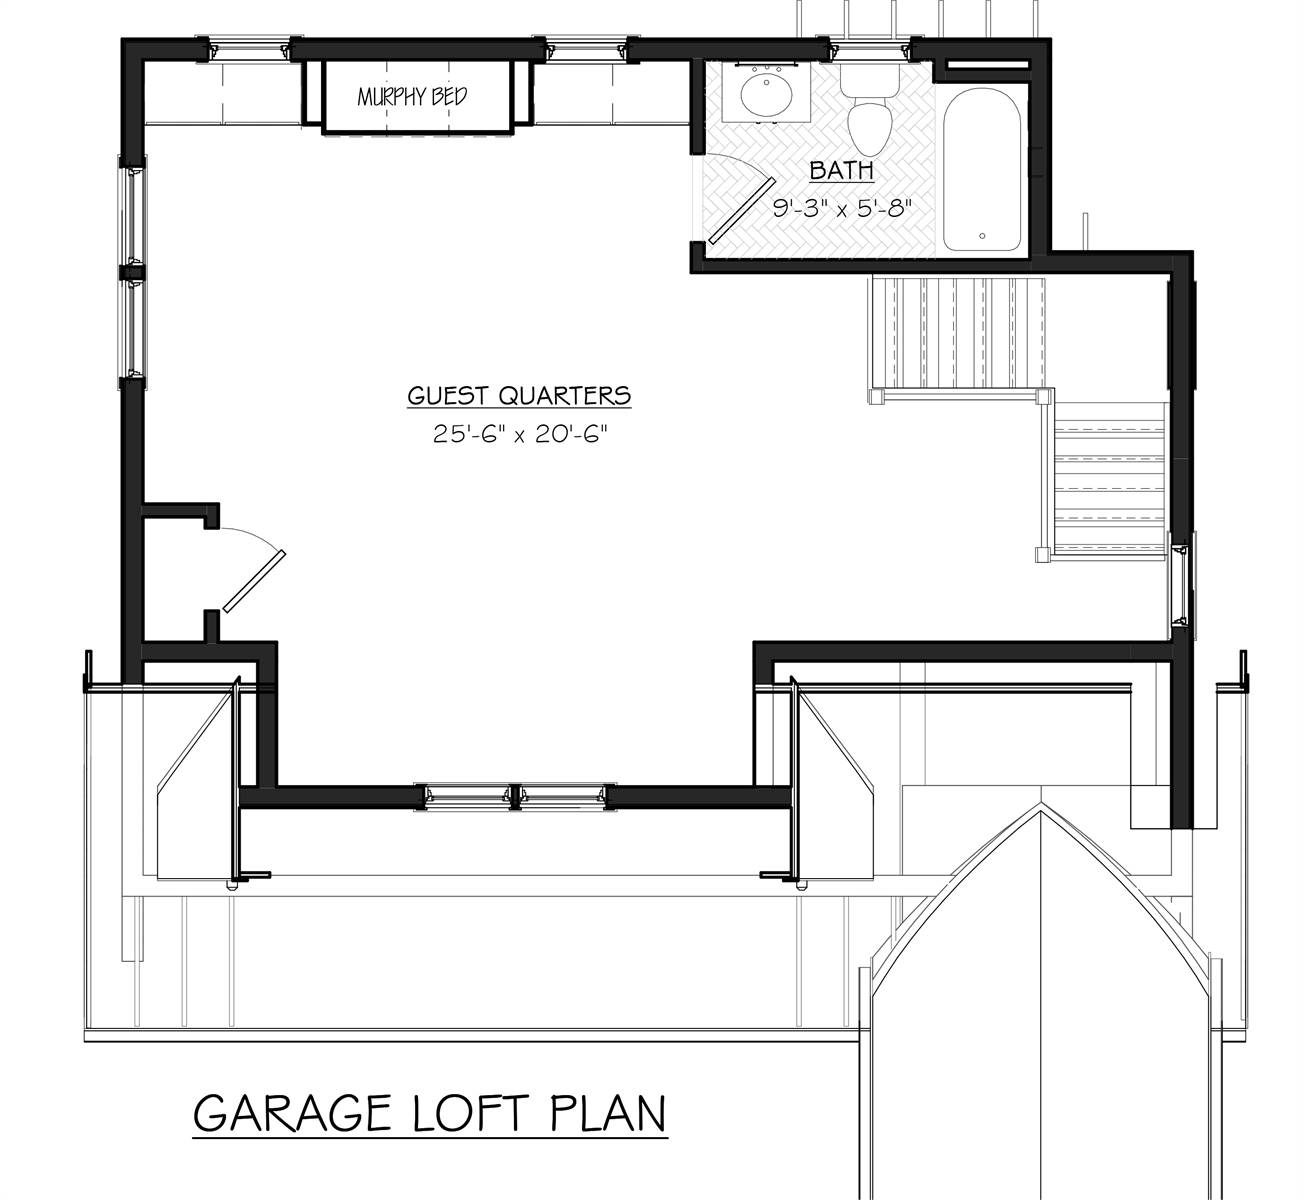 Garage Loft Floor Plan image of Featured House Plan: BHG - 7055